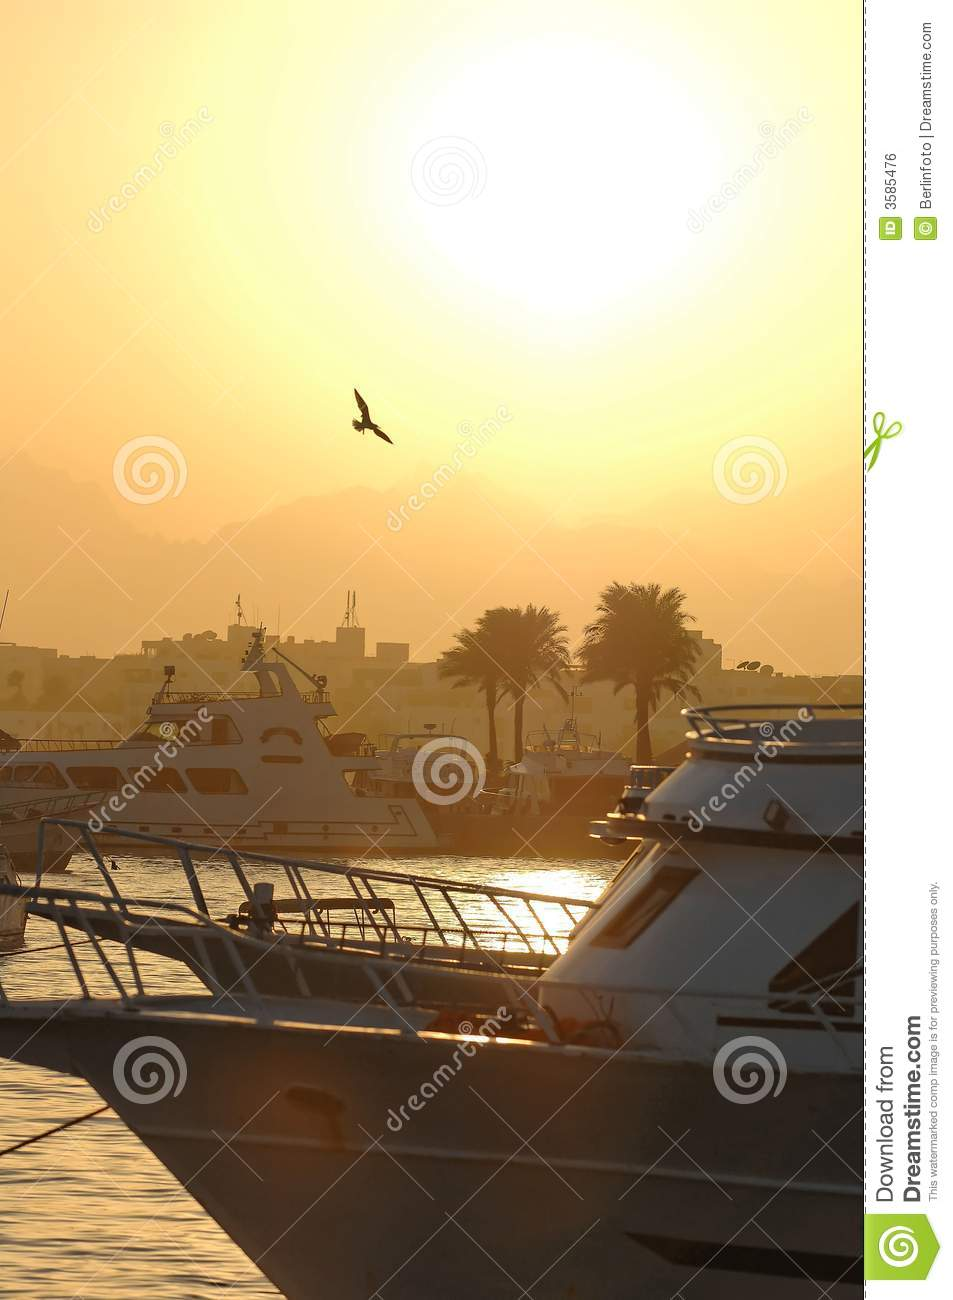 Sunset over harbor in Egypt